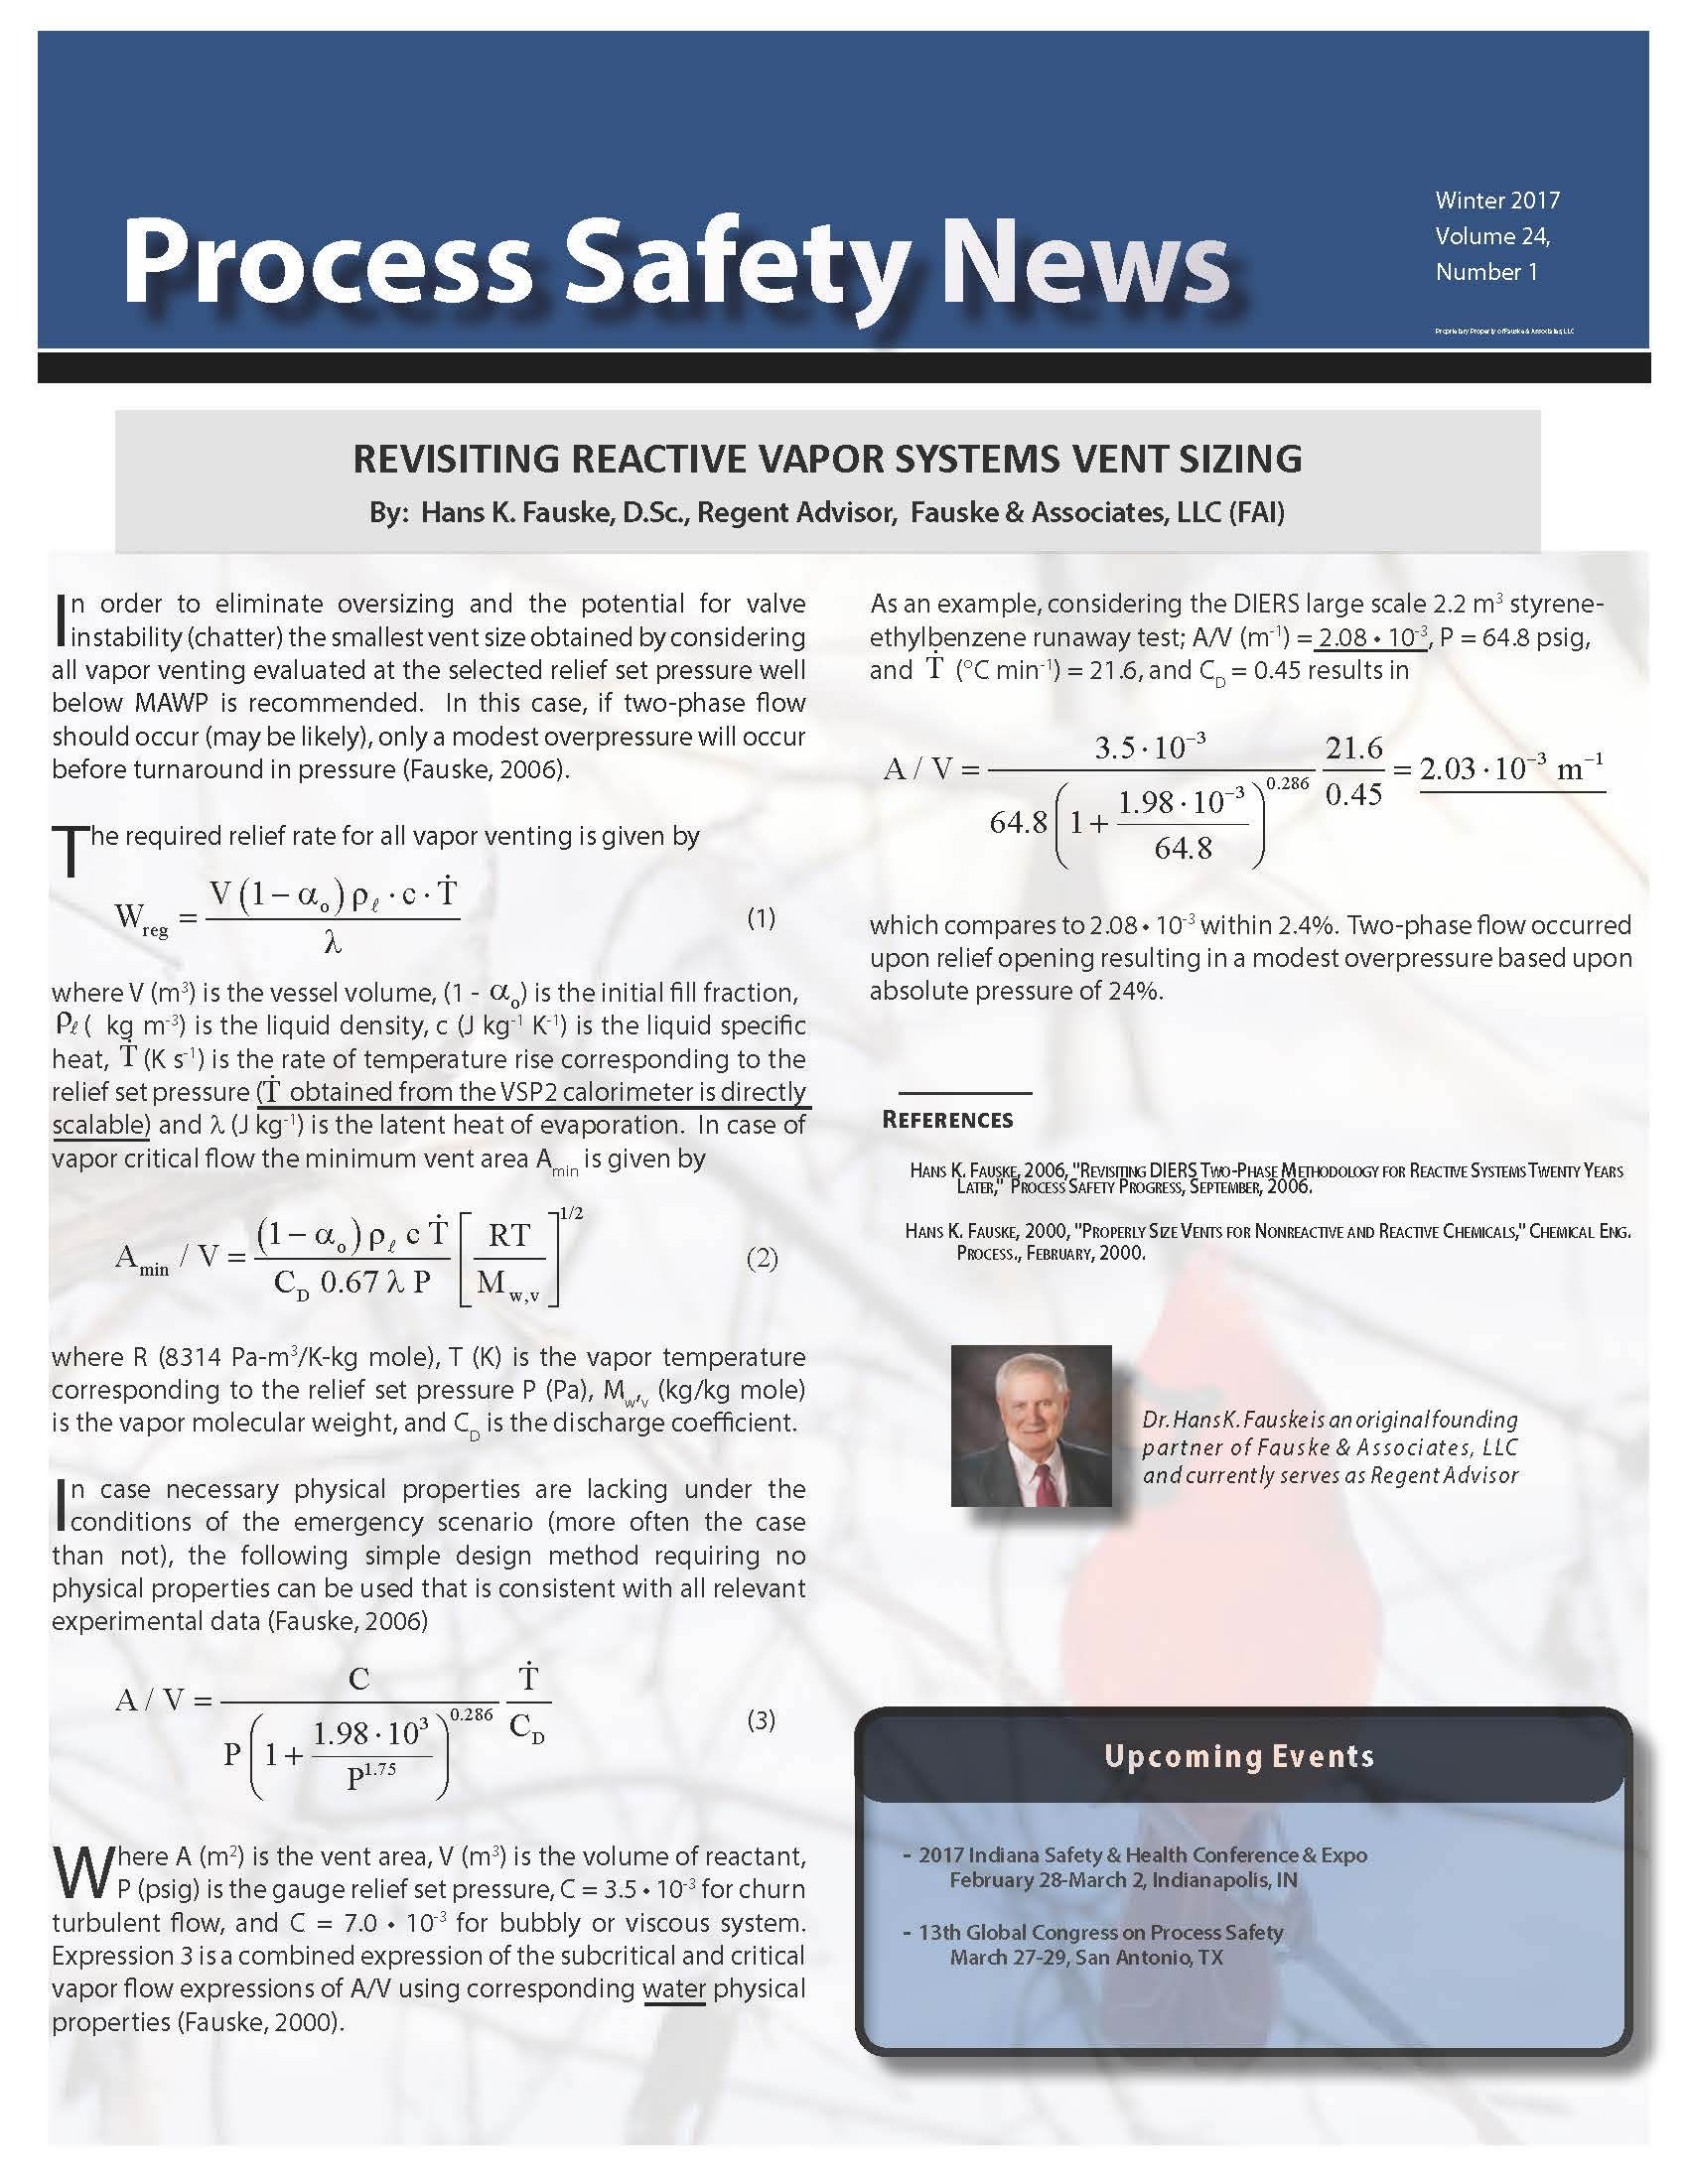 Winter 2017 Process Safety News web_Page_01.jpg